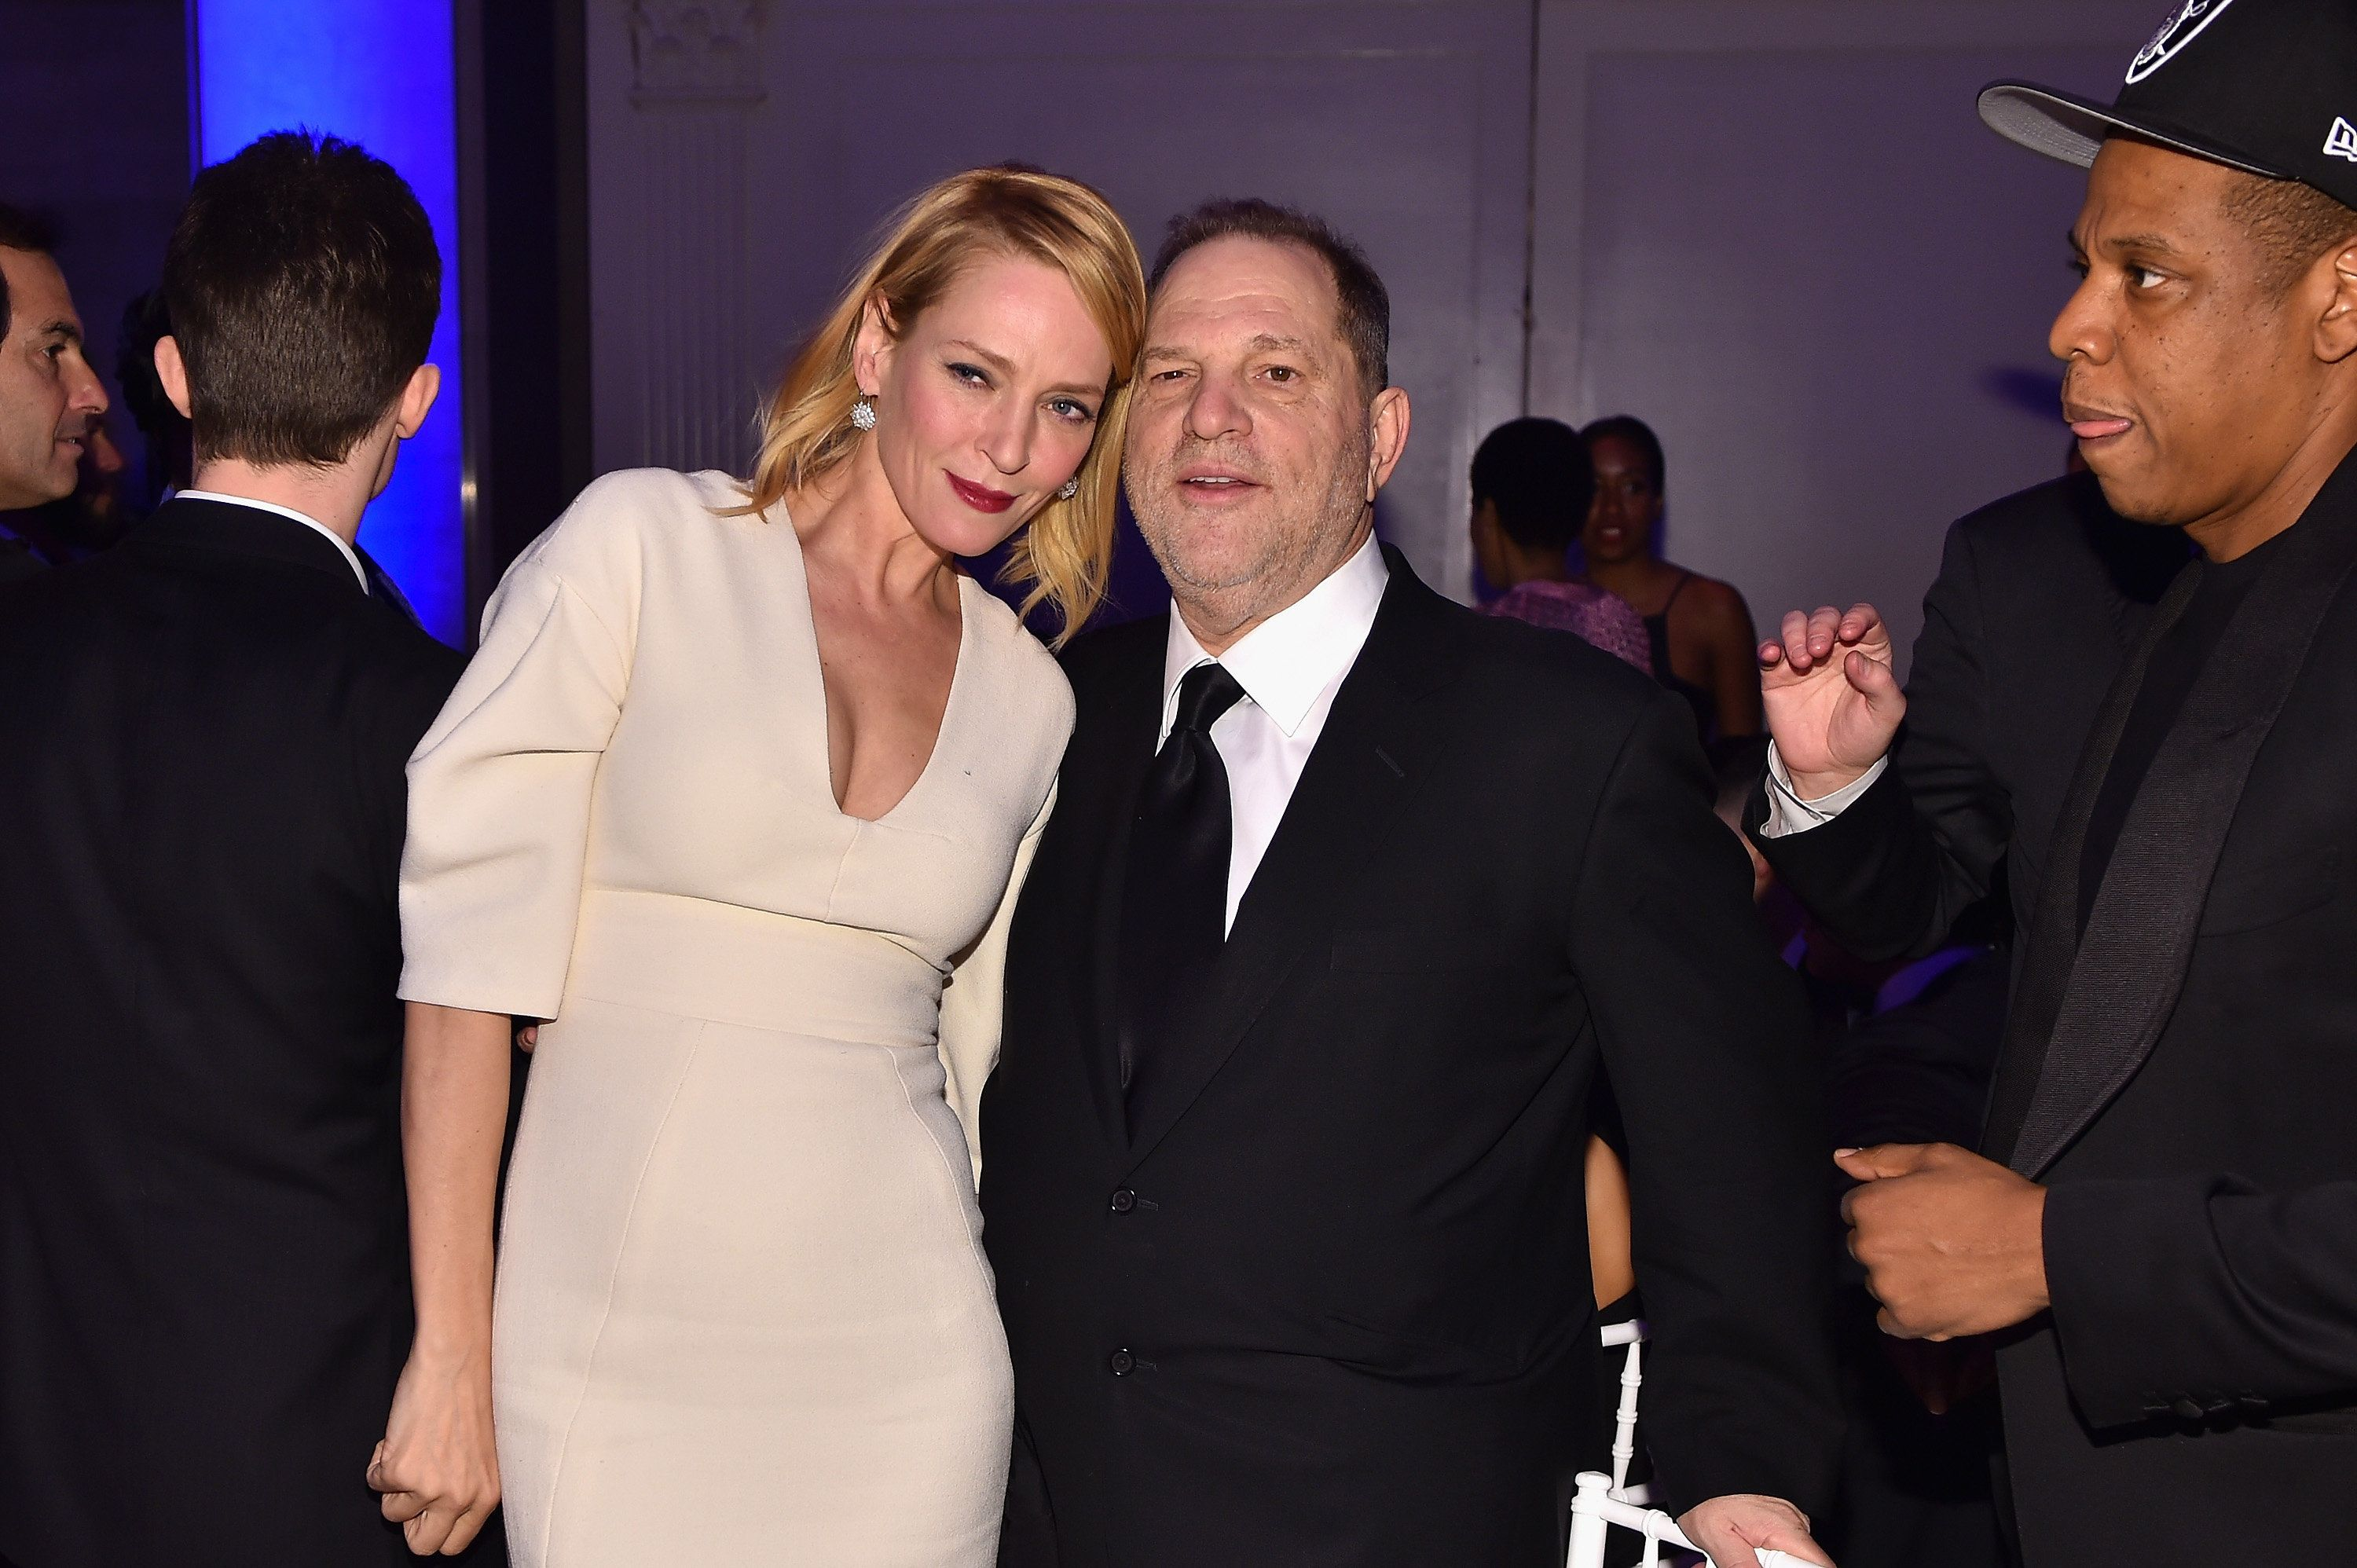 Uma Thurman Breaks Silence Over Alleged Harvey Weinstein Sexual